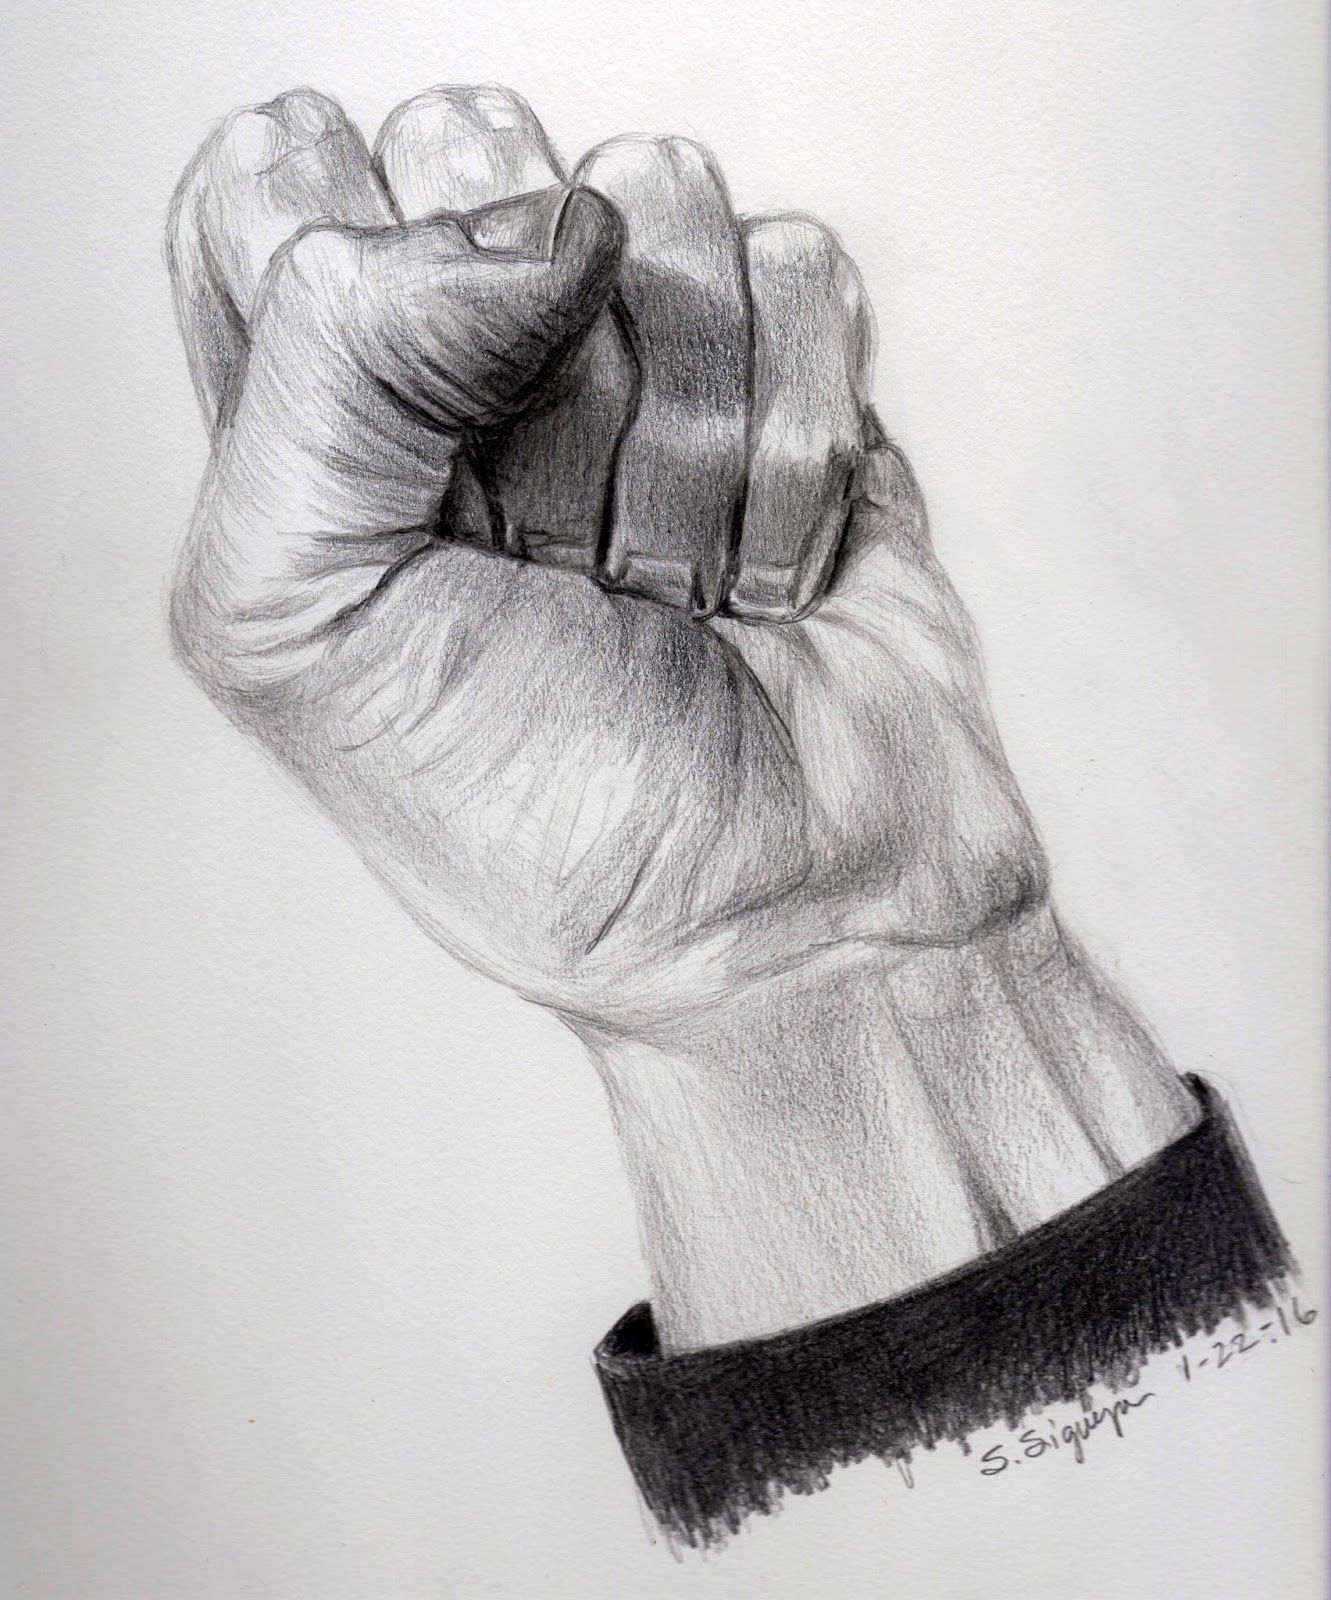 Clenched fist hand drawing